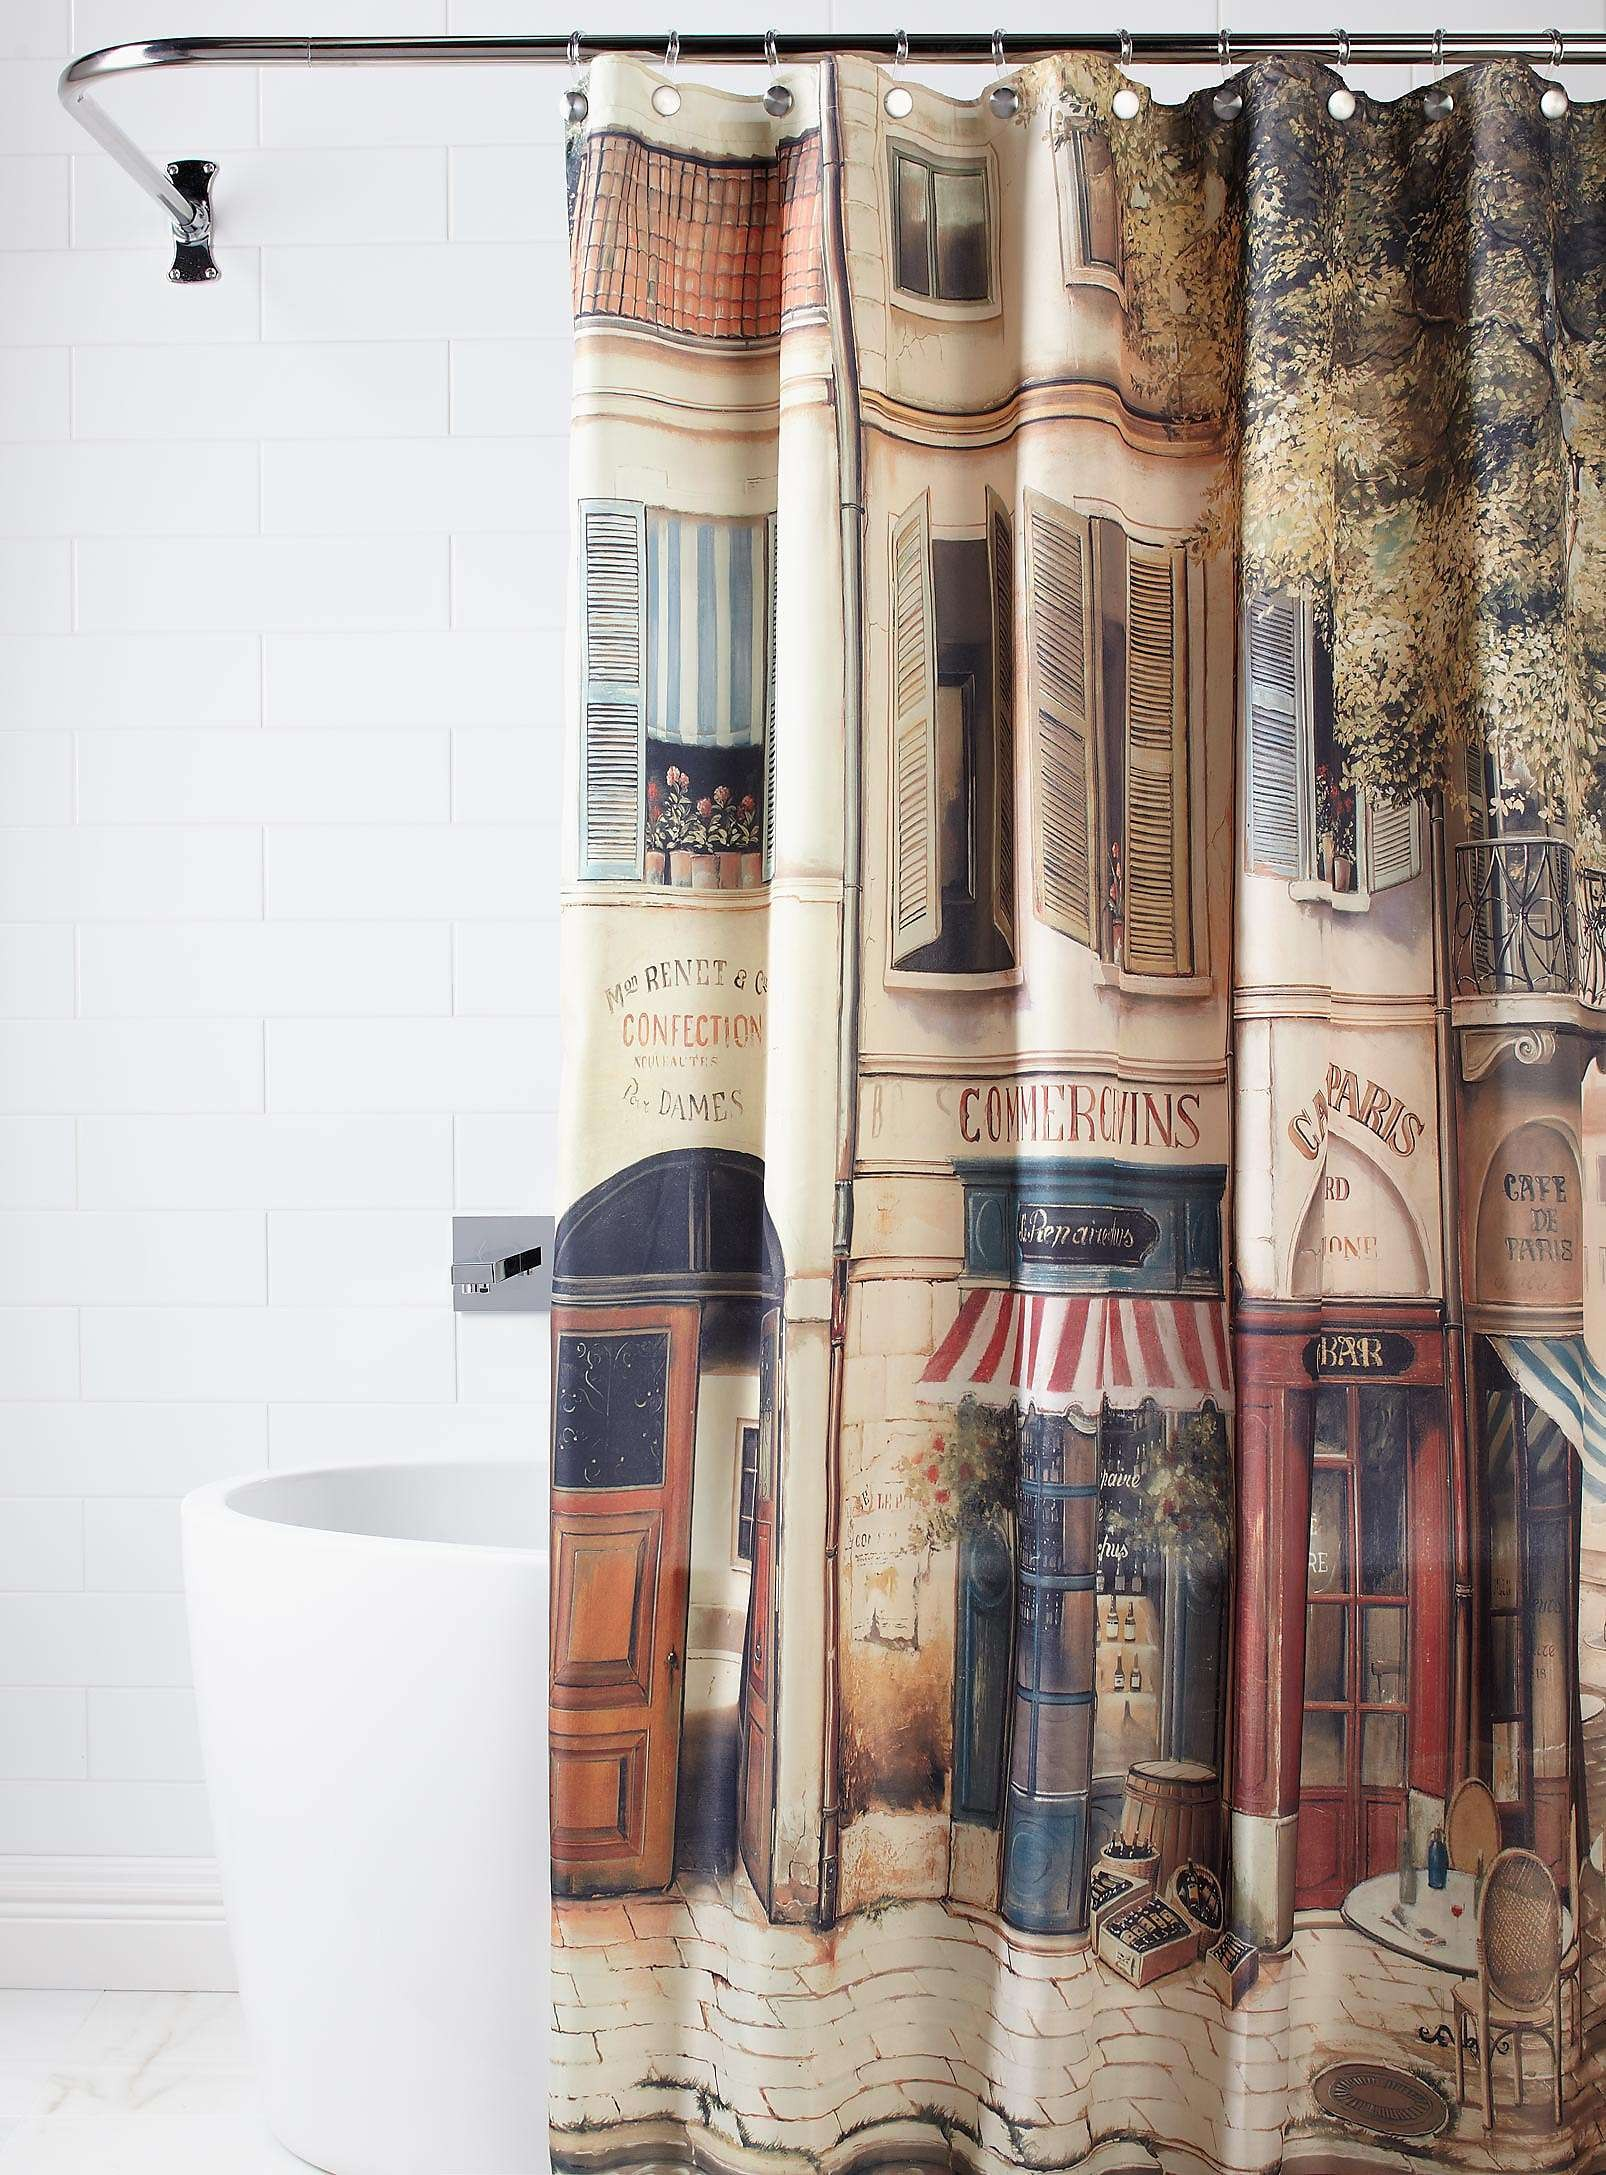 PARIS The Corner Coffee Shopnostalgiashower Curtain